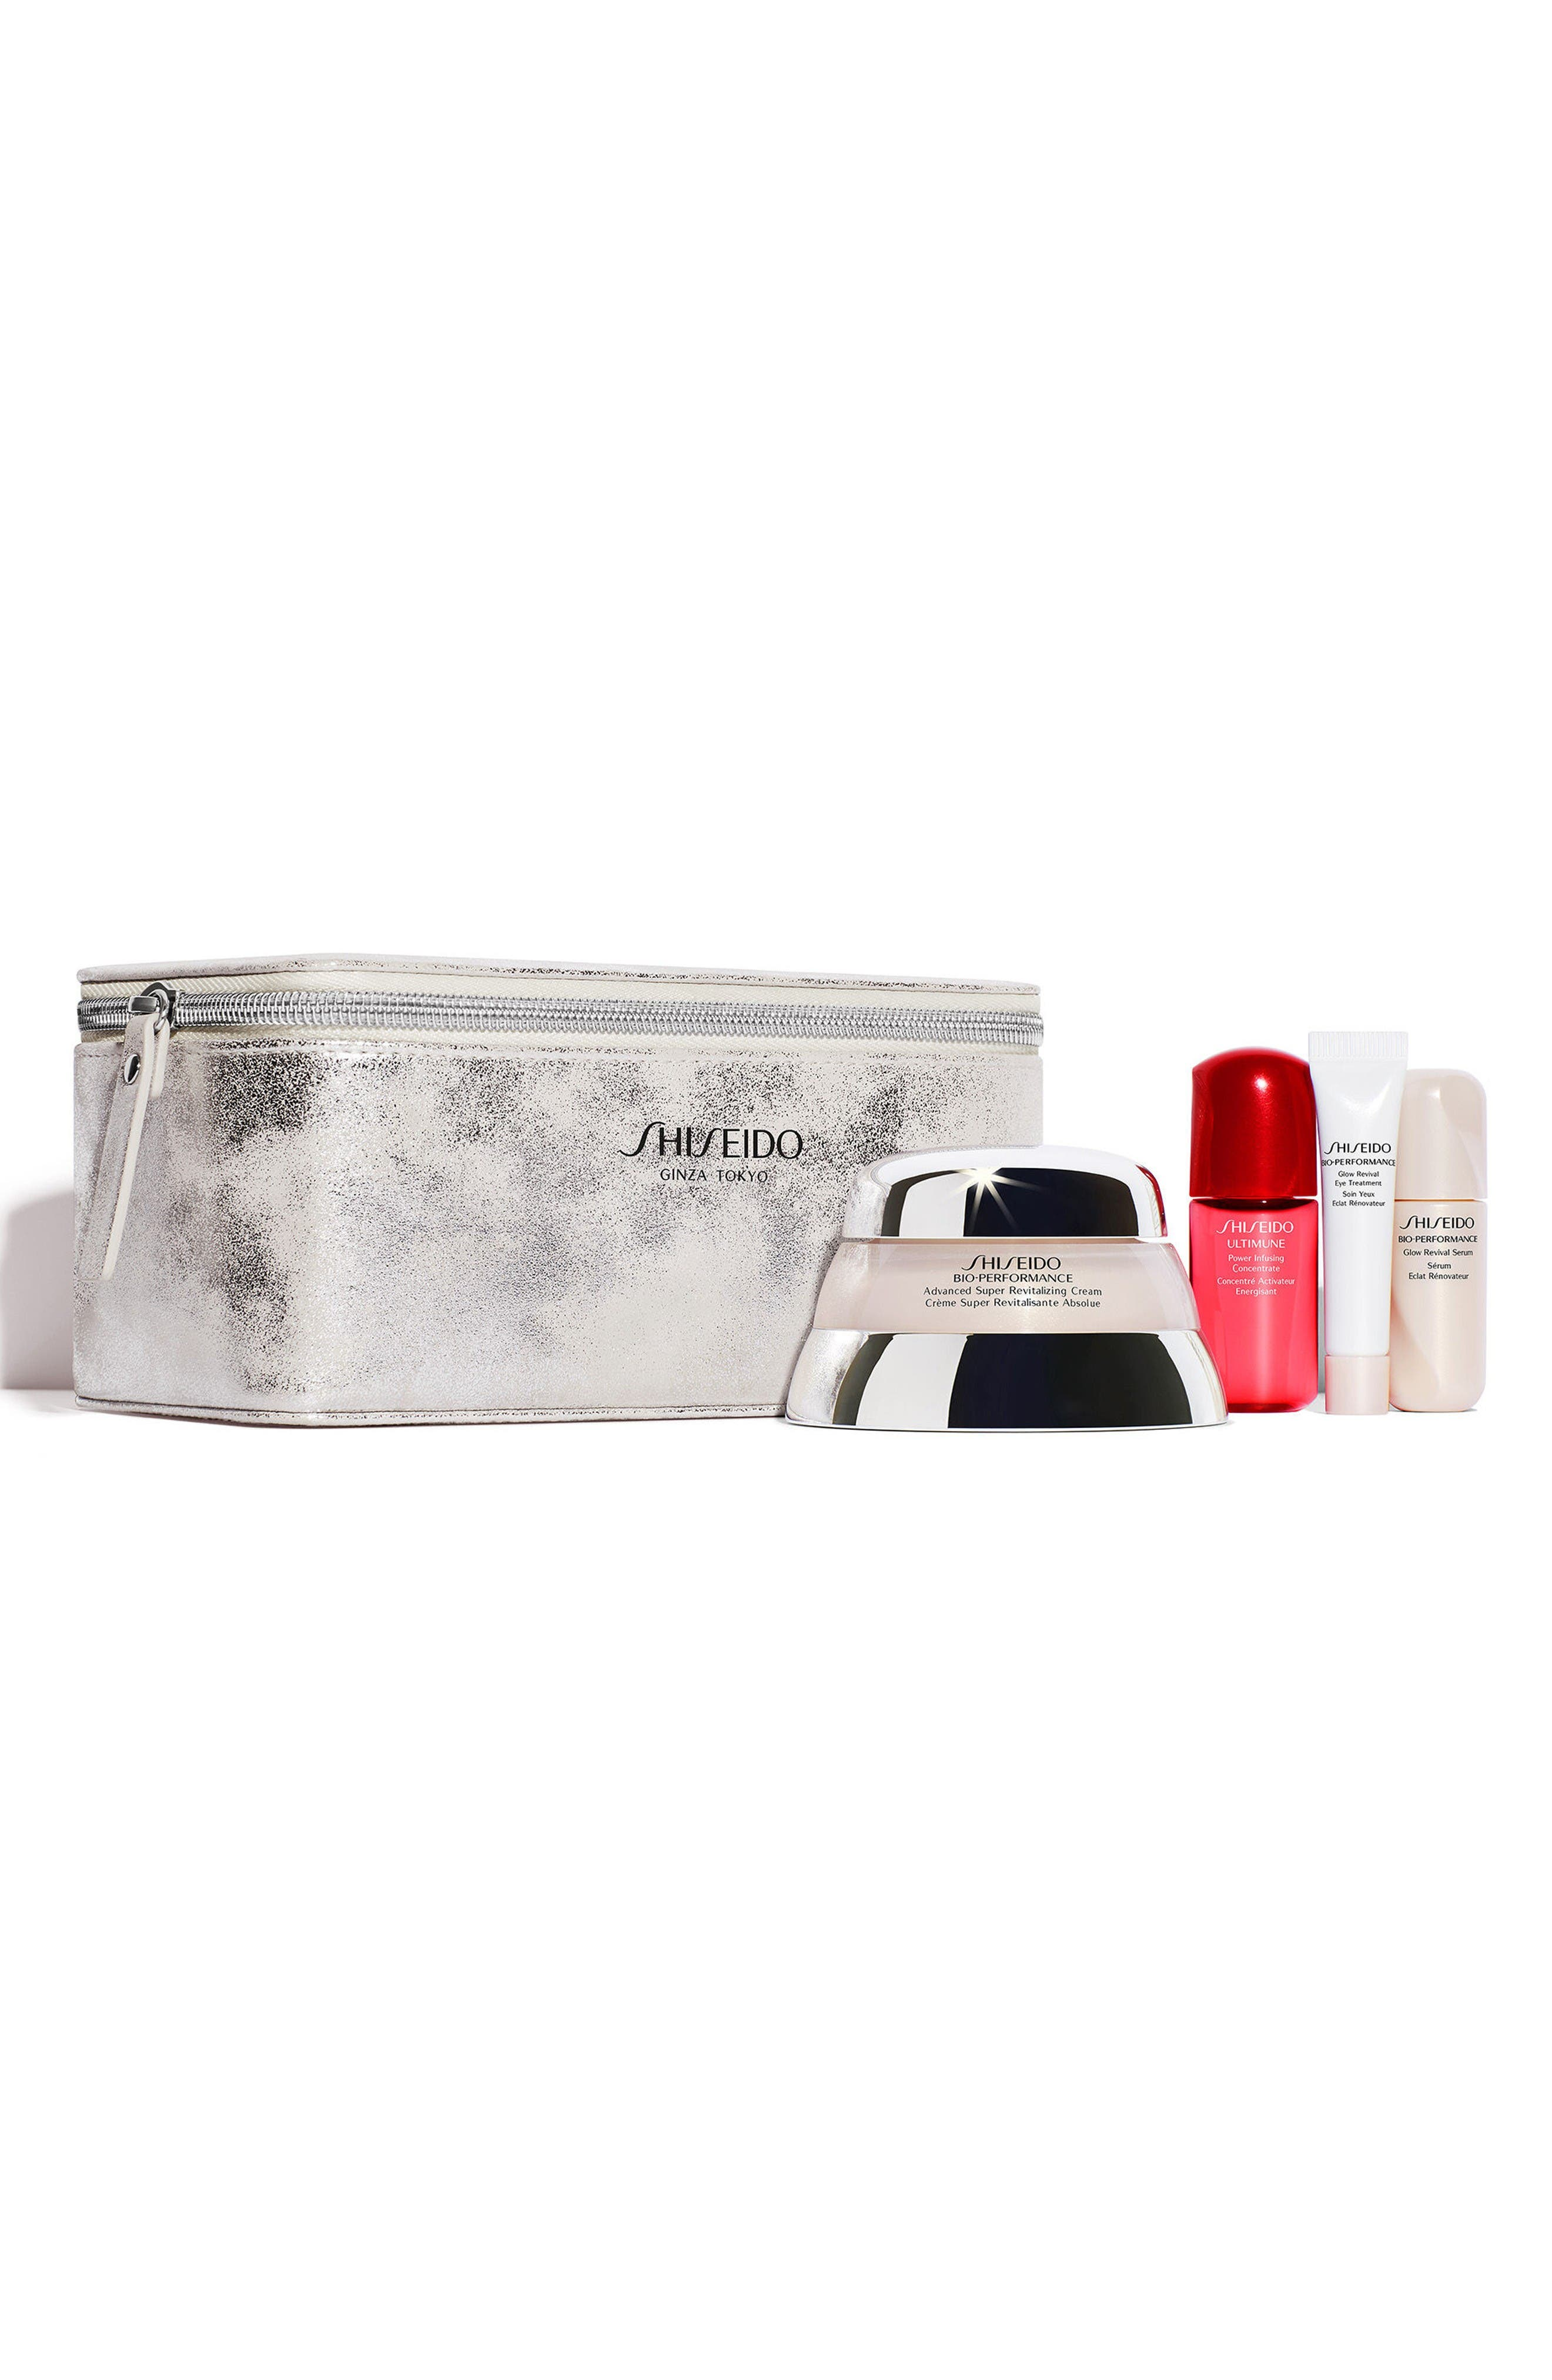 Shiseido Time to Revitalize Set ($160 Value)